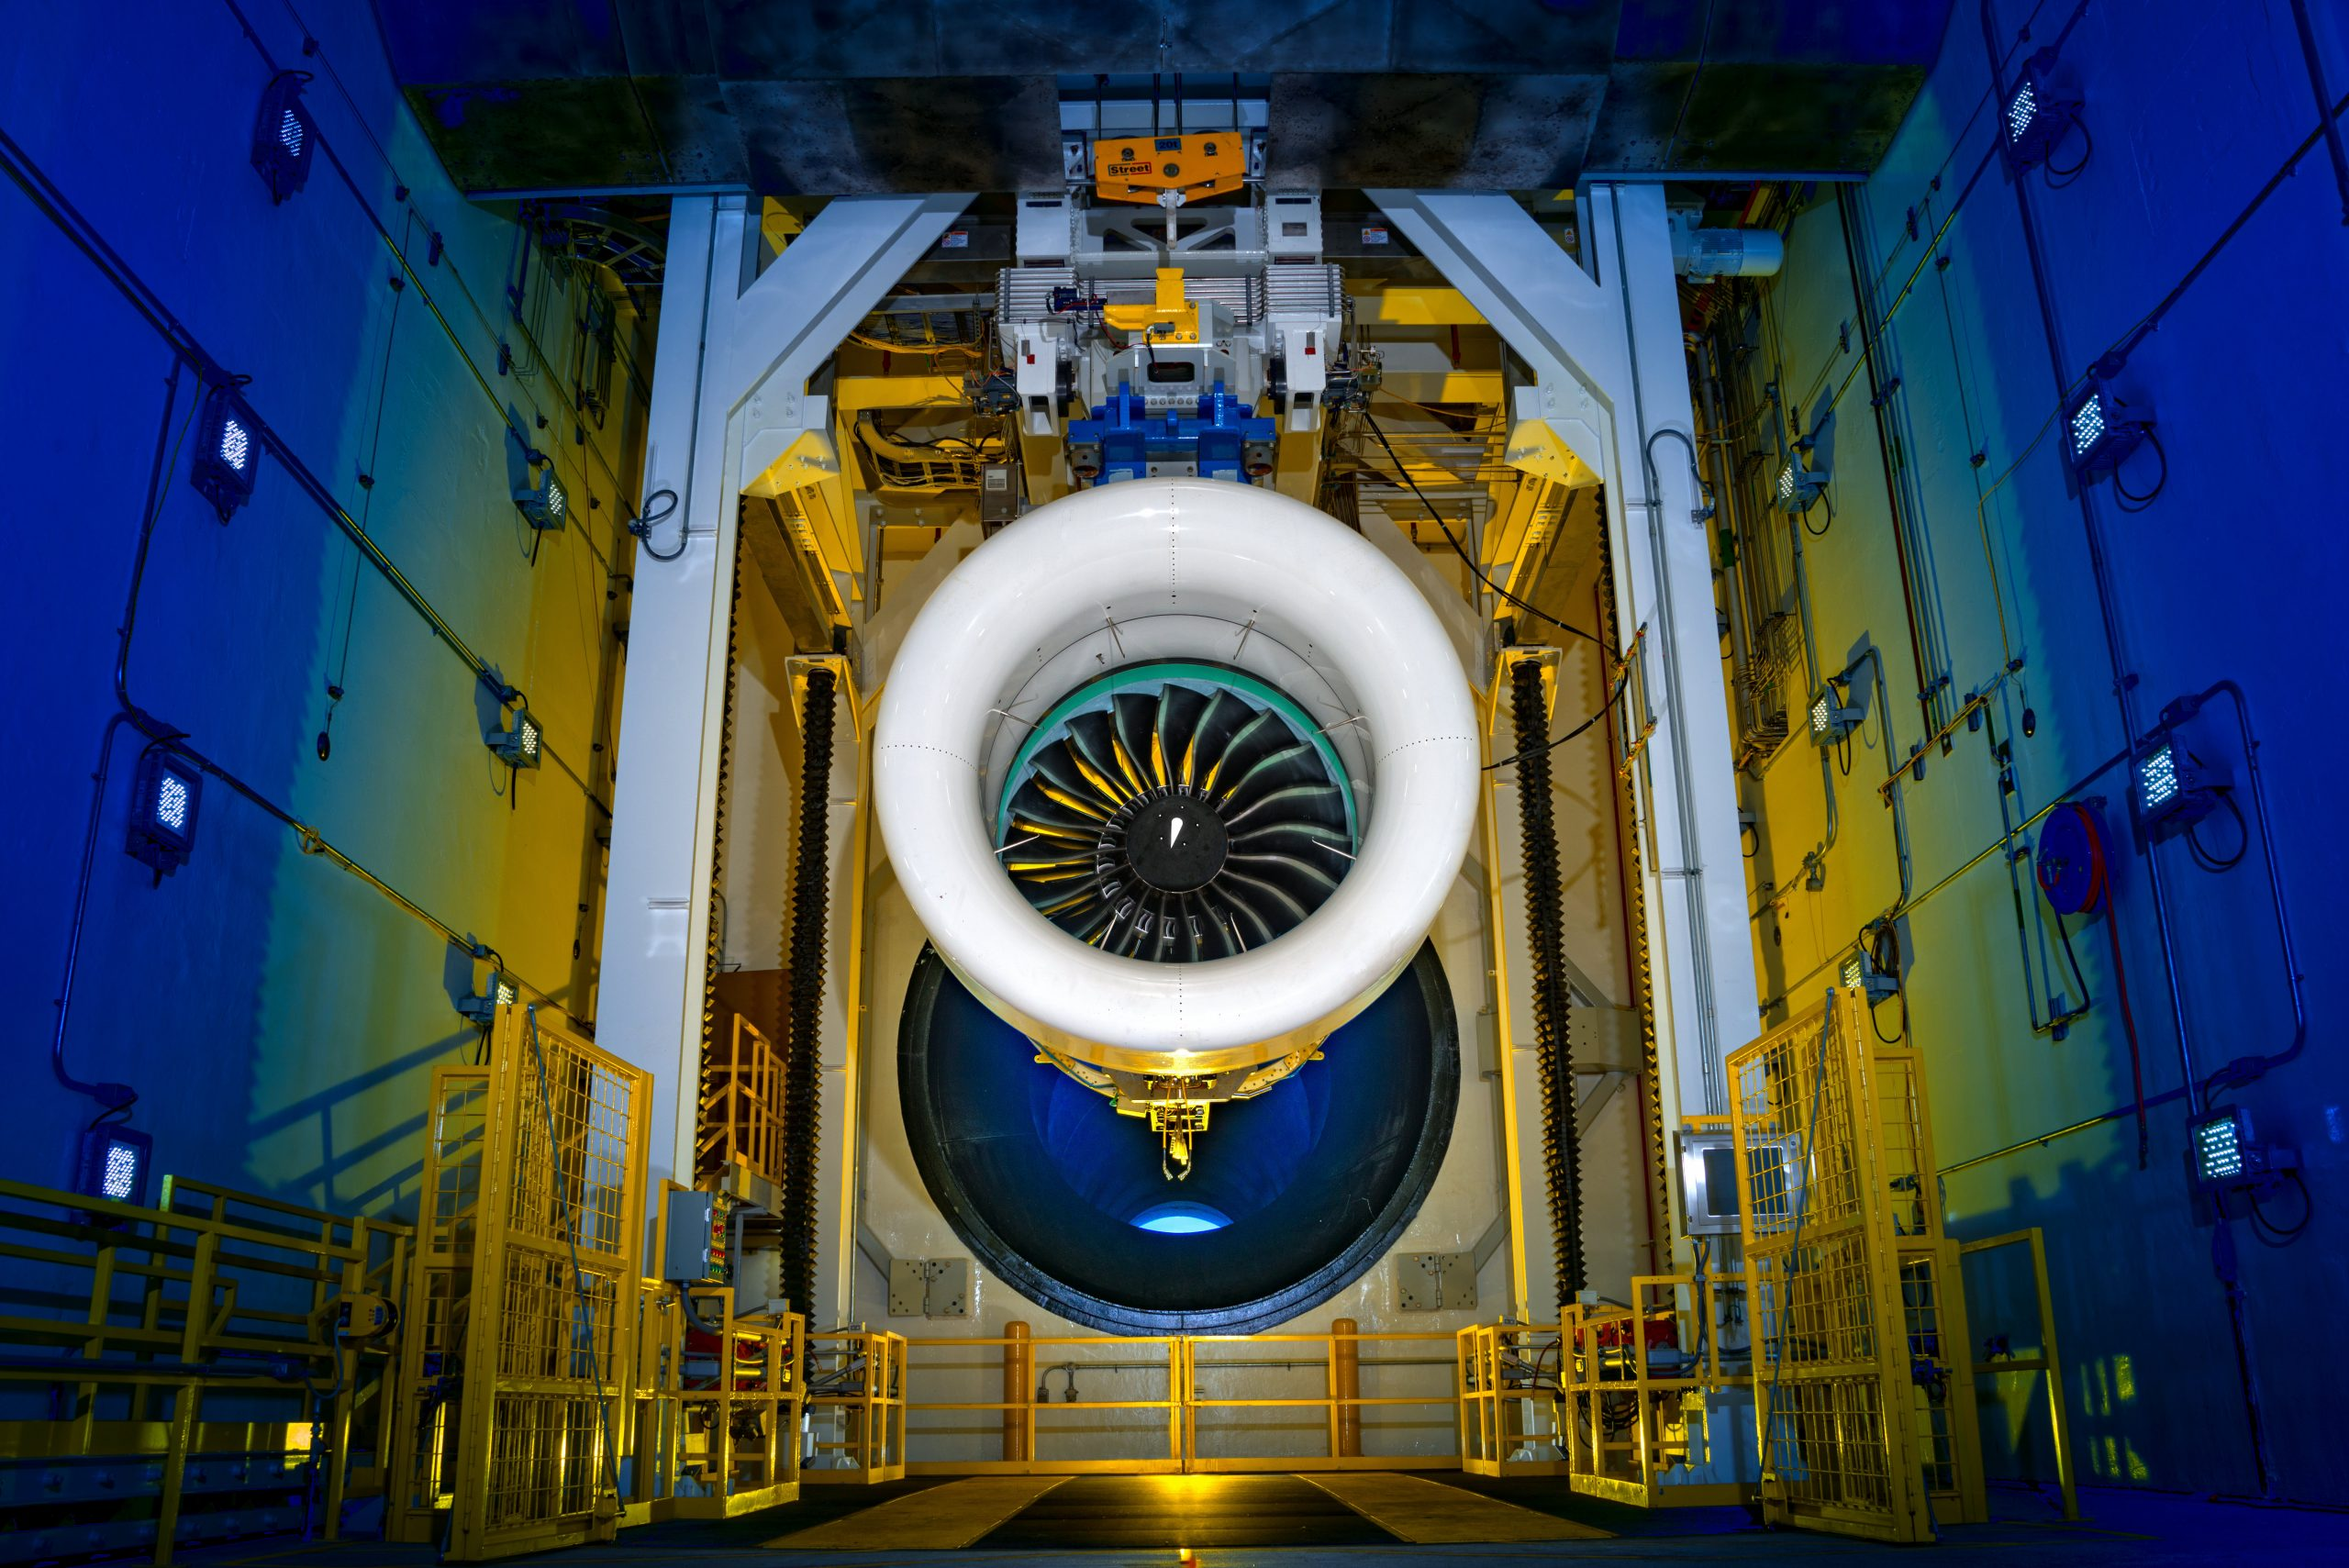 Pratt & Whitney's Geared Turbofan Engine has enabled some commercial aircraft to achieve 16% reduction in fuel consumption, 75% reduction in noise and 50% reduction in nitrogen oxide emissions. (Photo courtesy of Pratt & Whitney)